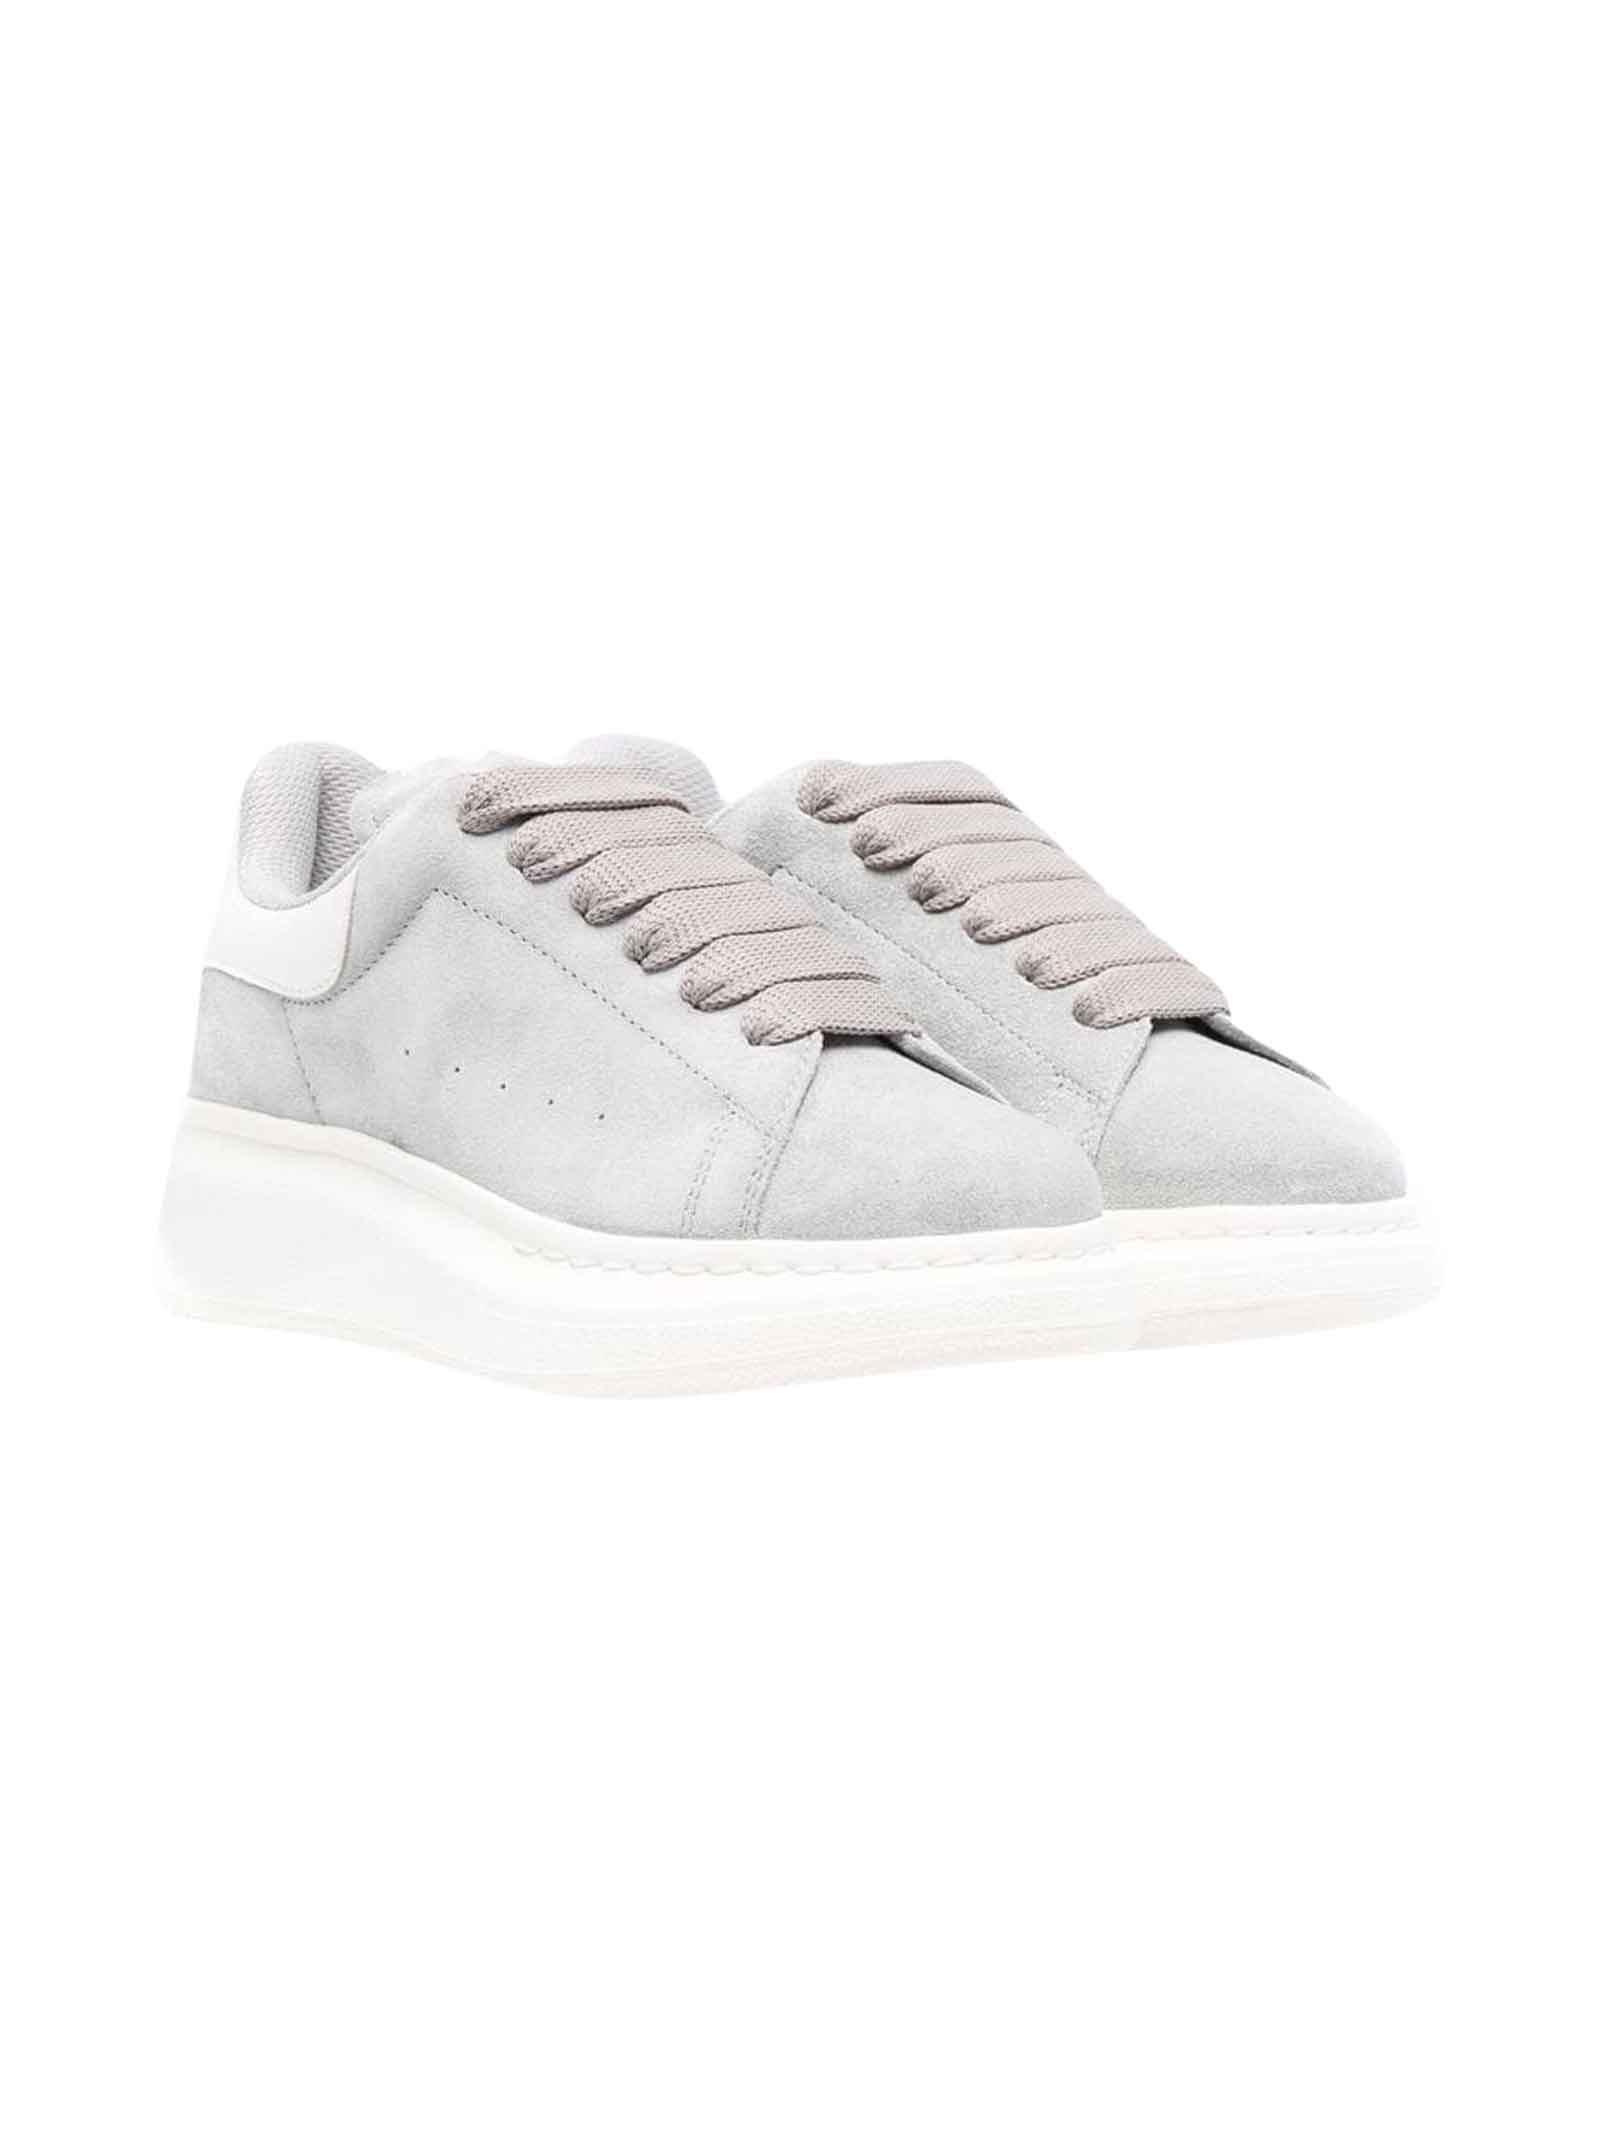 Alexander McQueen Grey Sneakers With Higher Sole, Logo, Round Tip And Frontal Lace Closure Kids